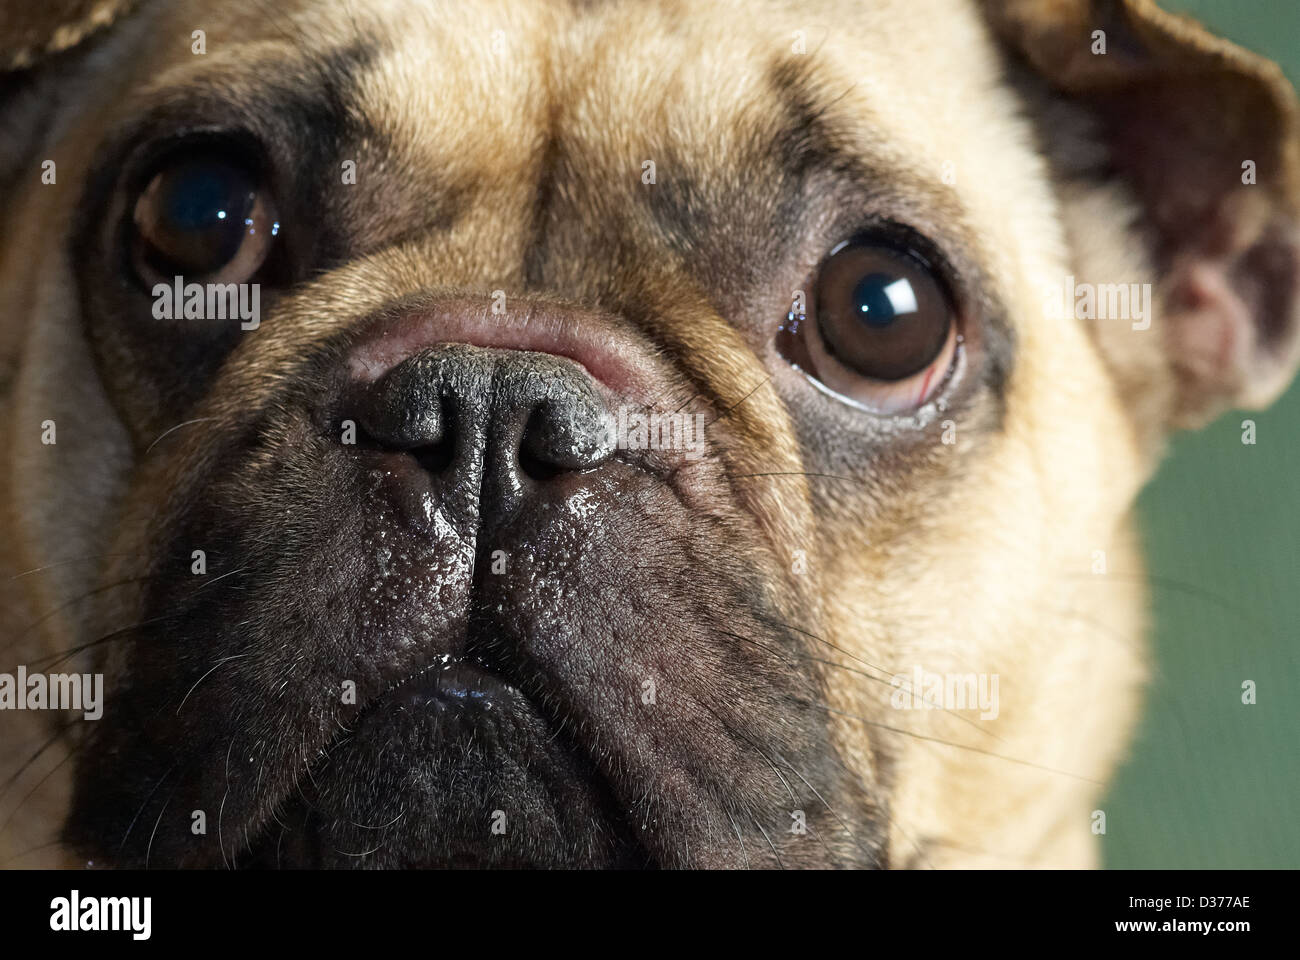 A Chinese pug nosed dog - Stock Image